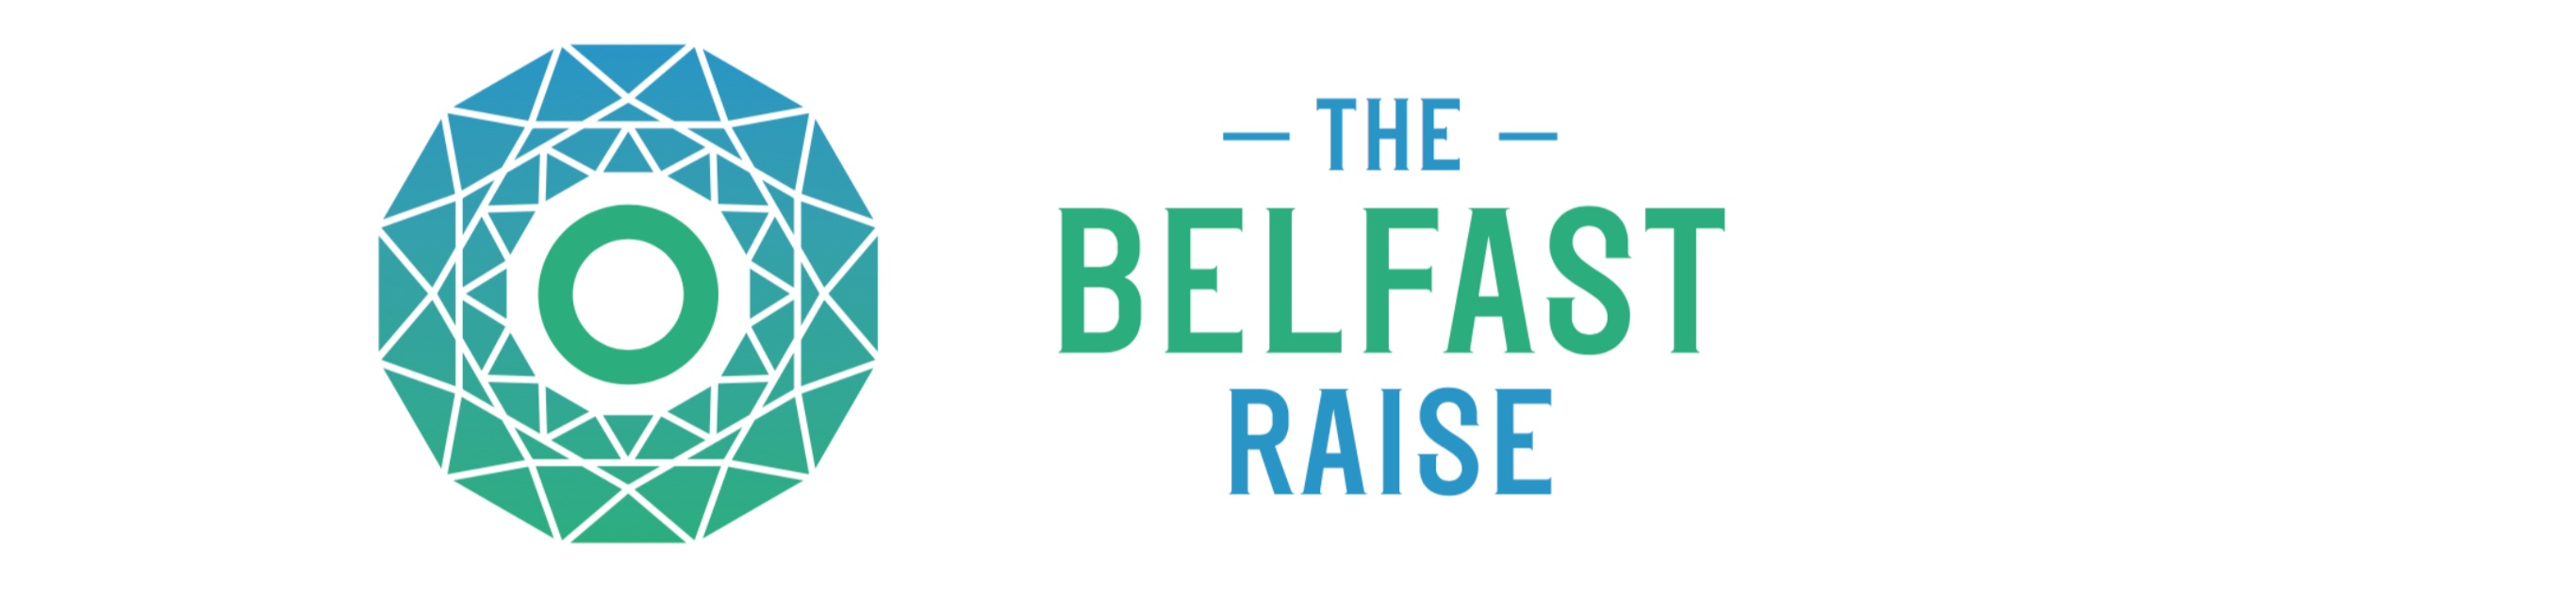 THE BELFAST RAISE